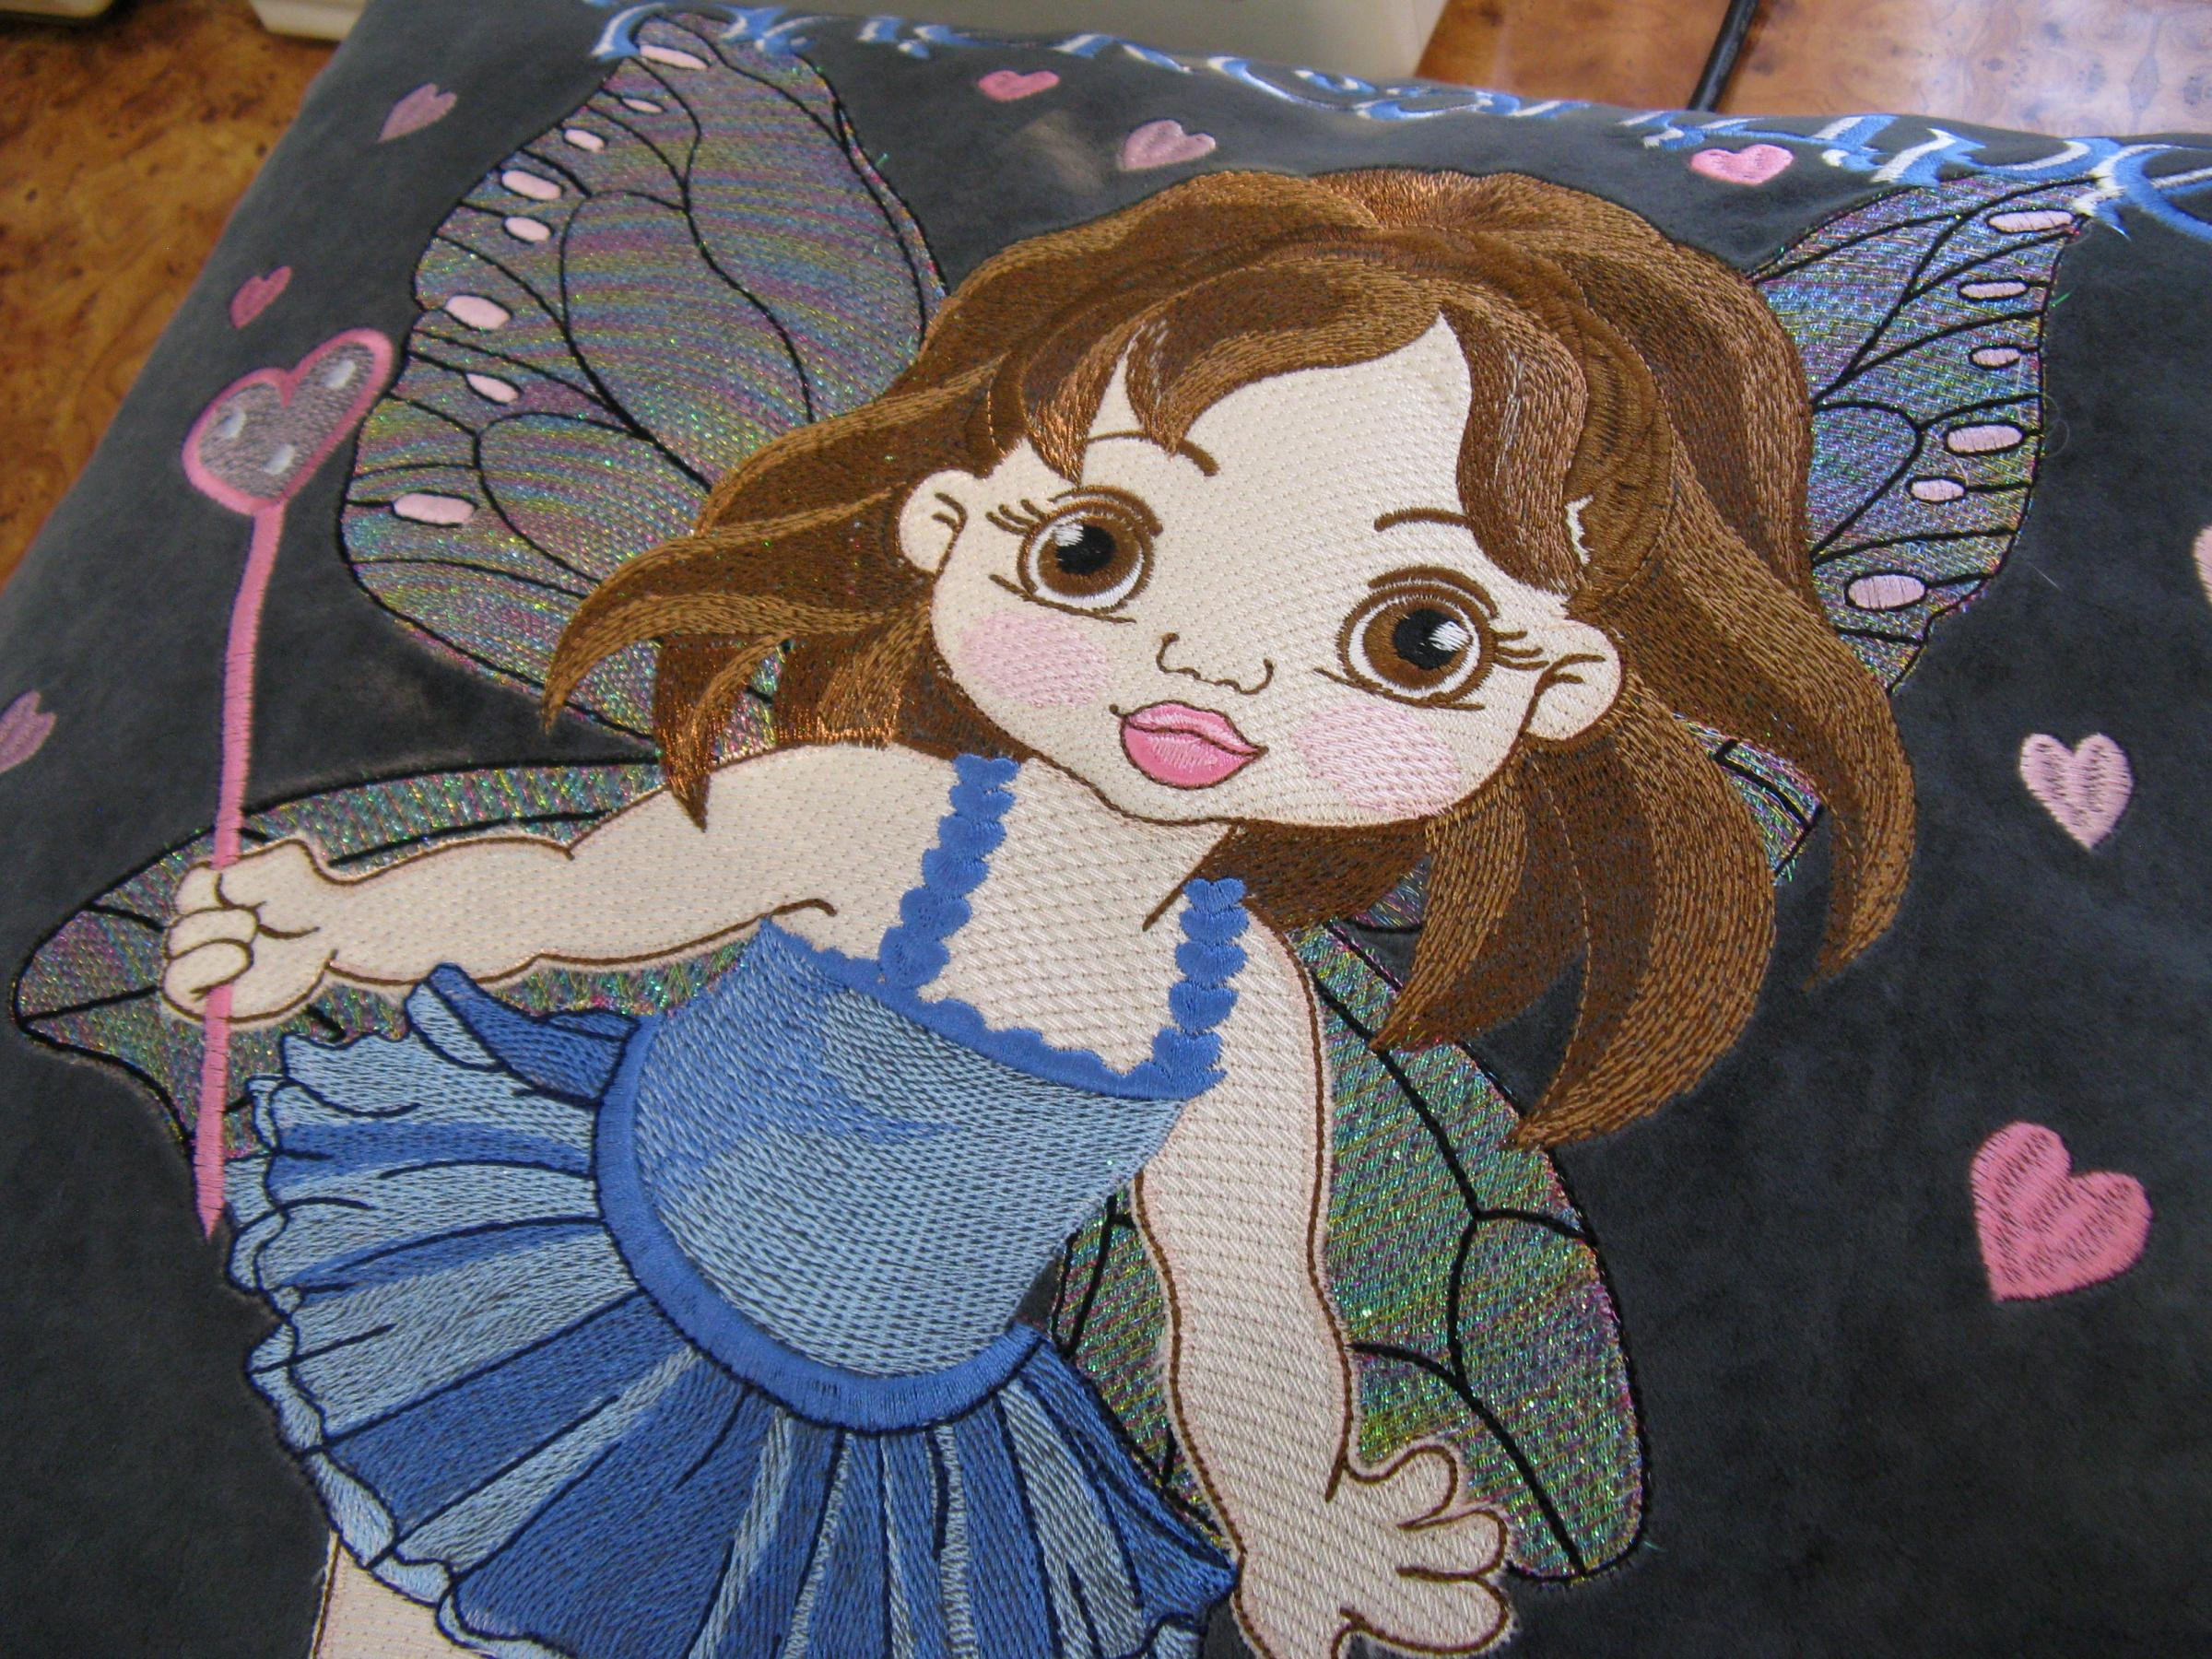 Sofa cushion with Baby love fairy embroidery design